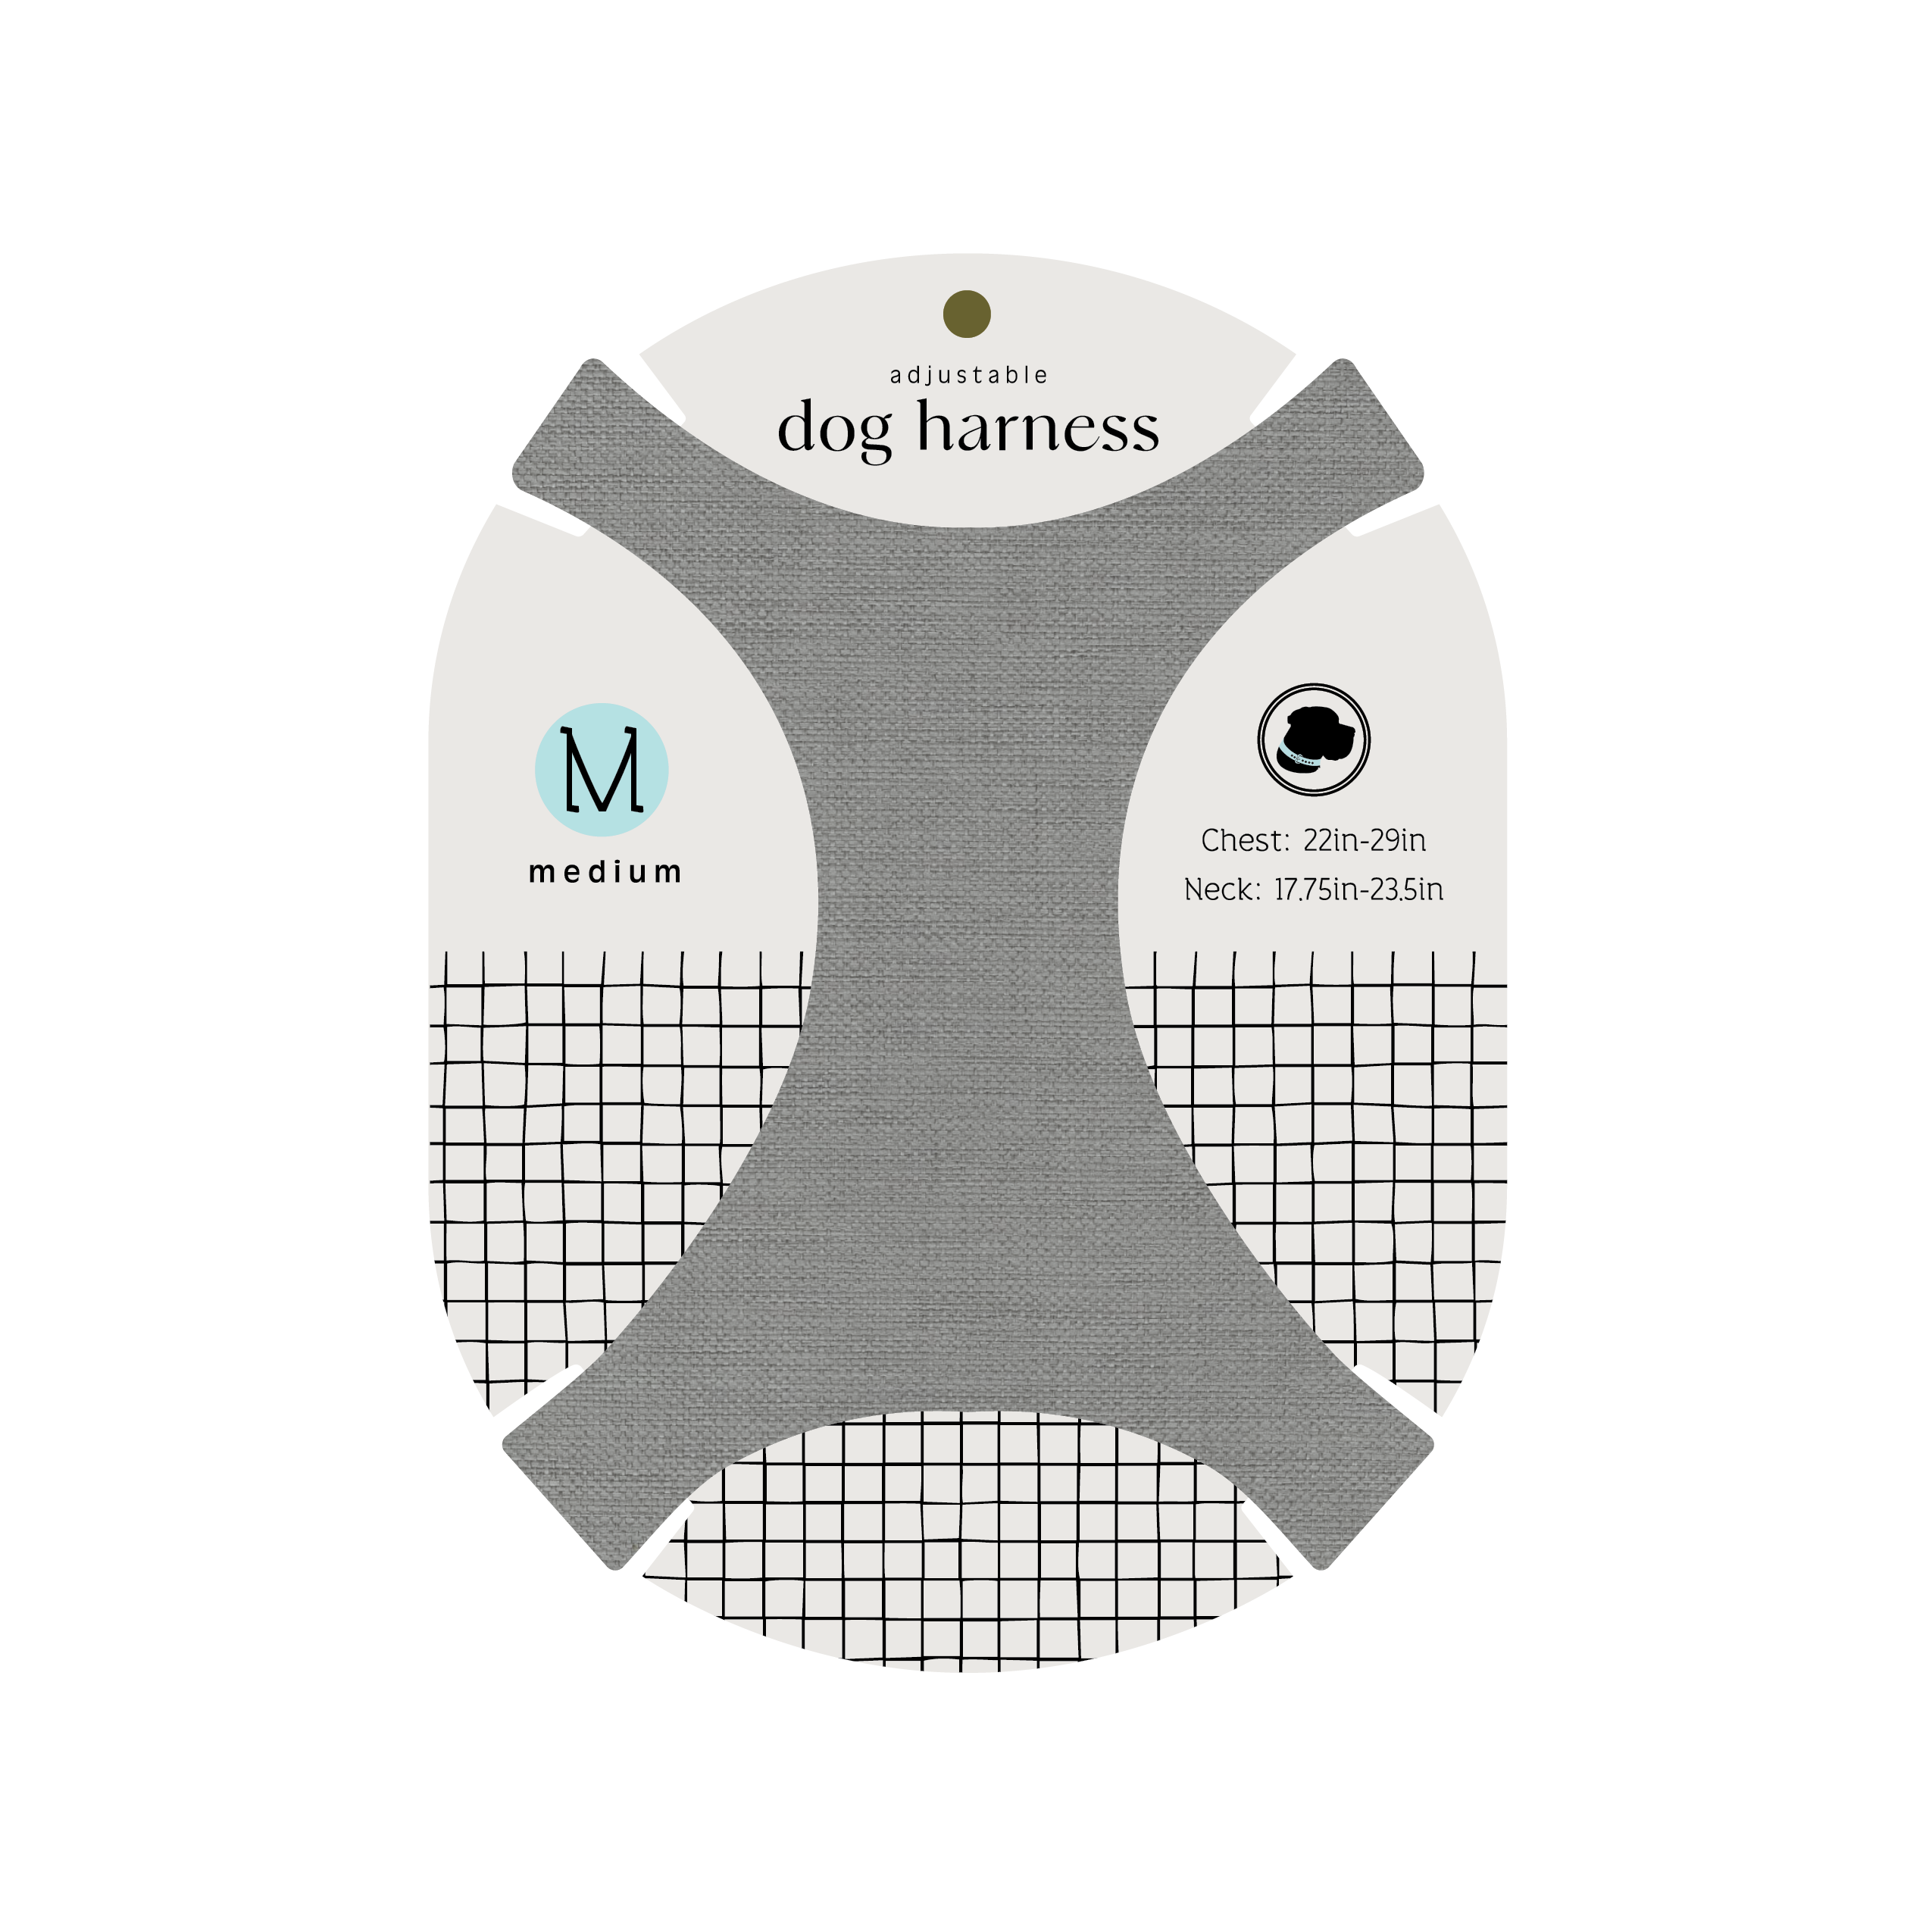 Adjustable dog harness and packaging